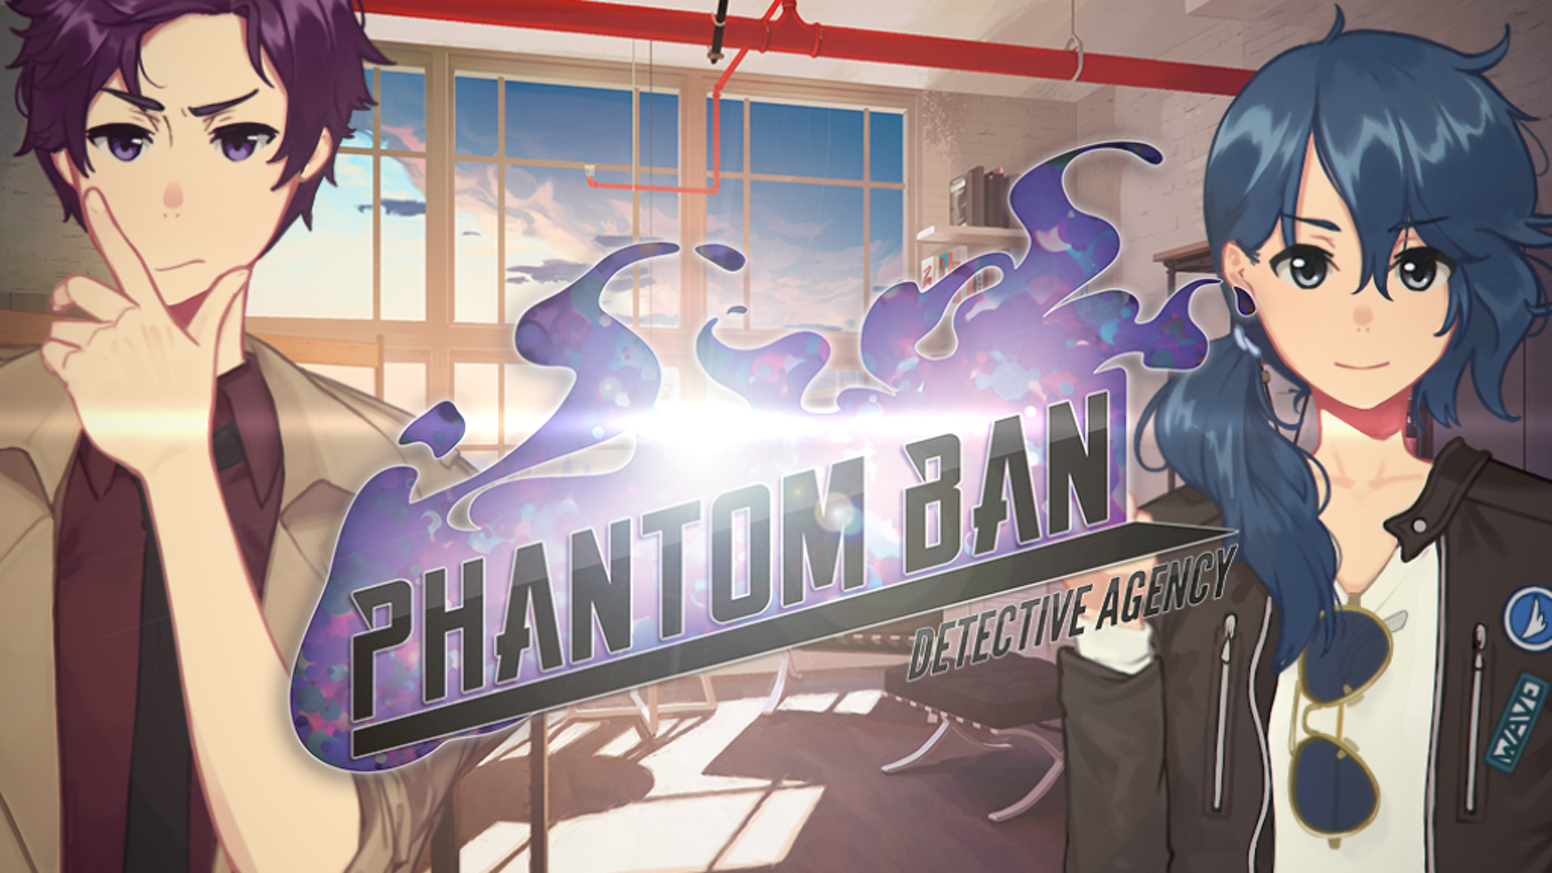 A mystery visual novel revolving around two high school detectives who solve cases involving strange beings called Phantoms. GxG/GxB